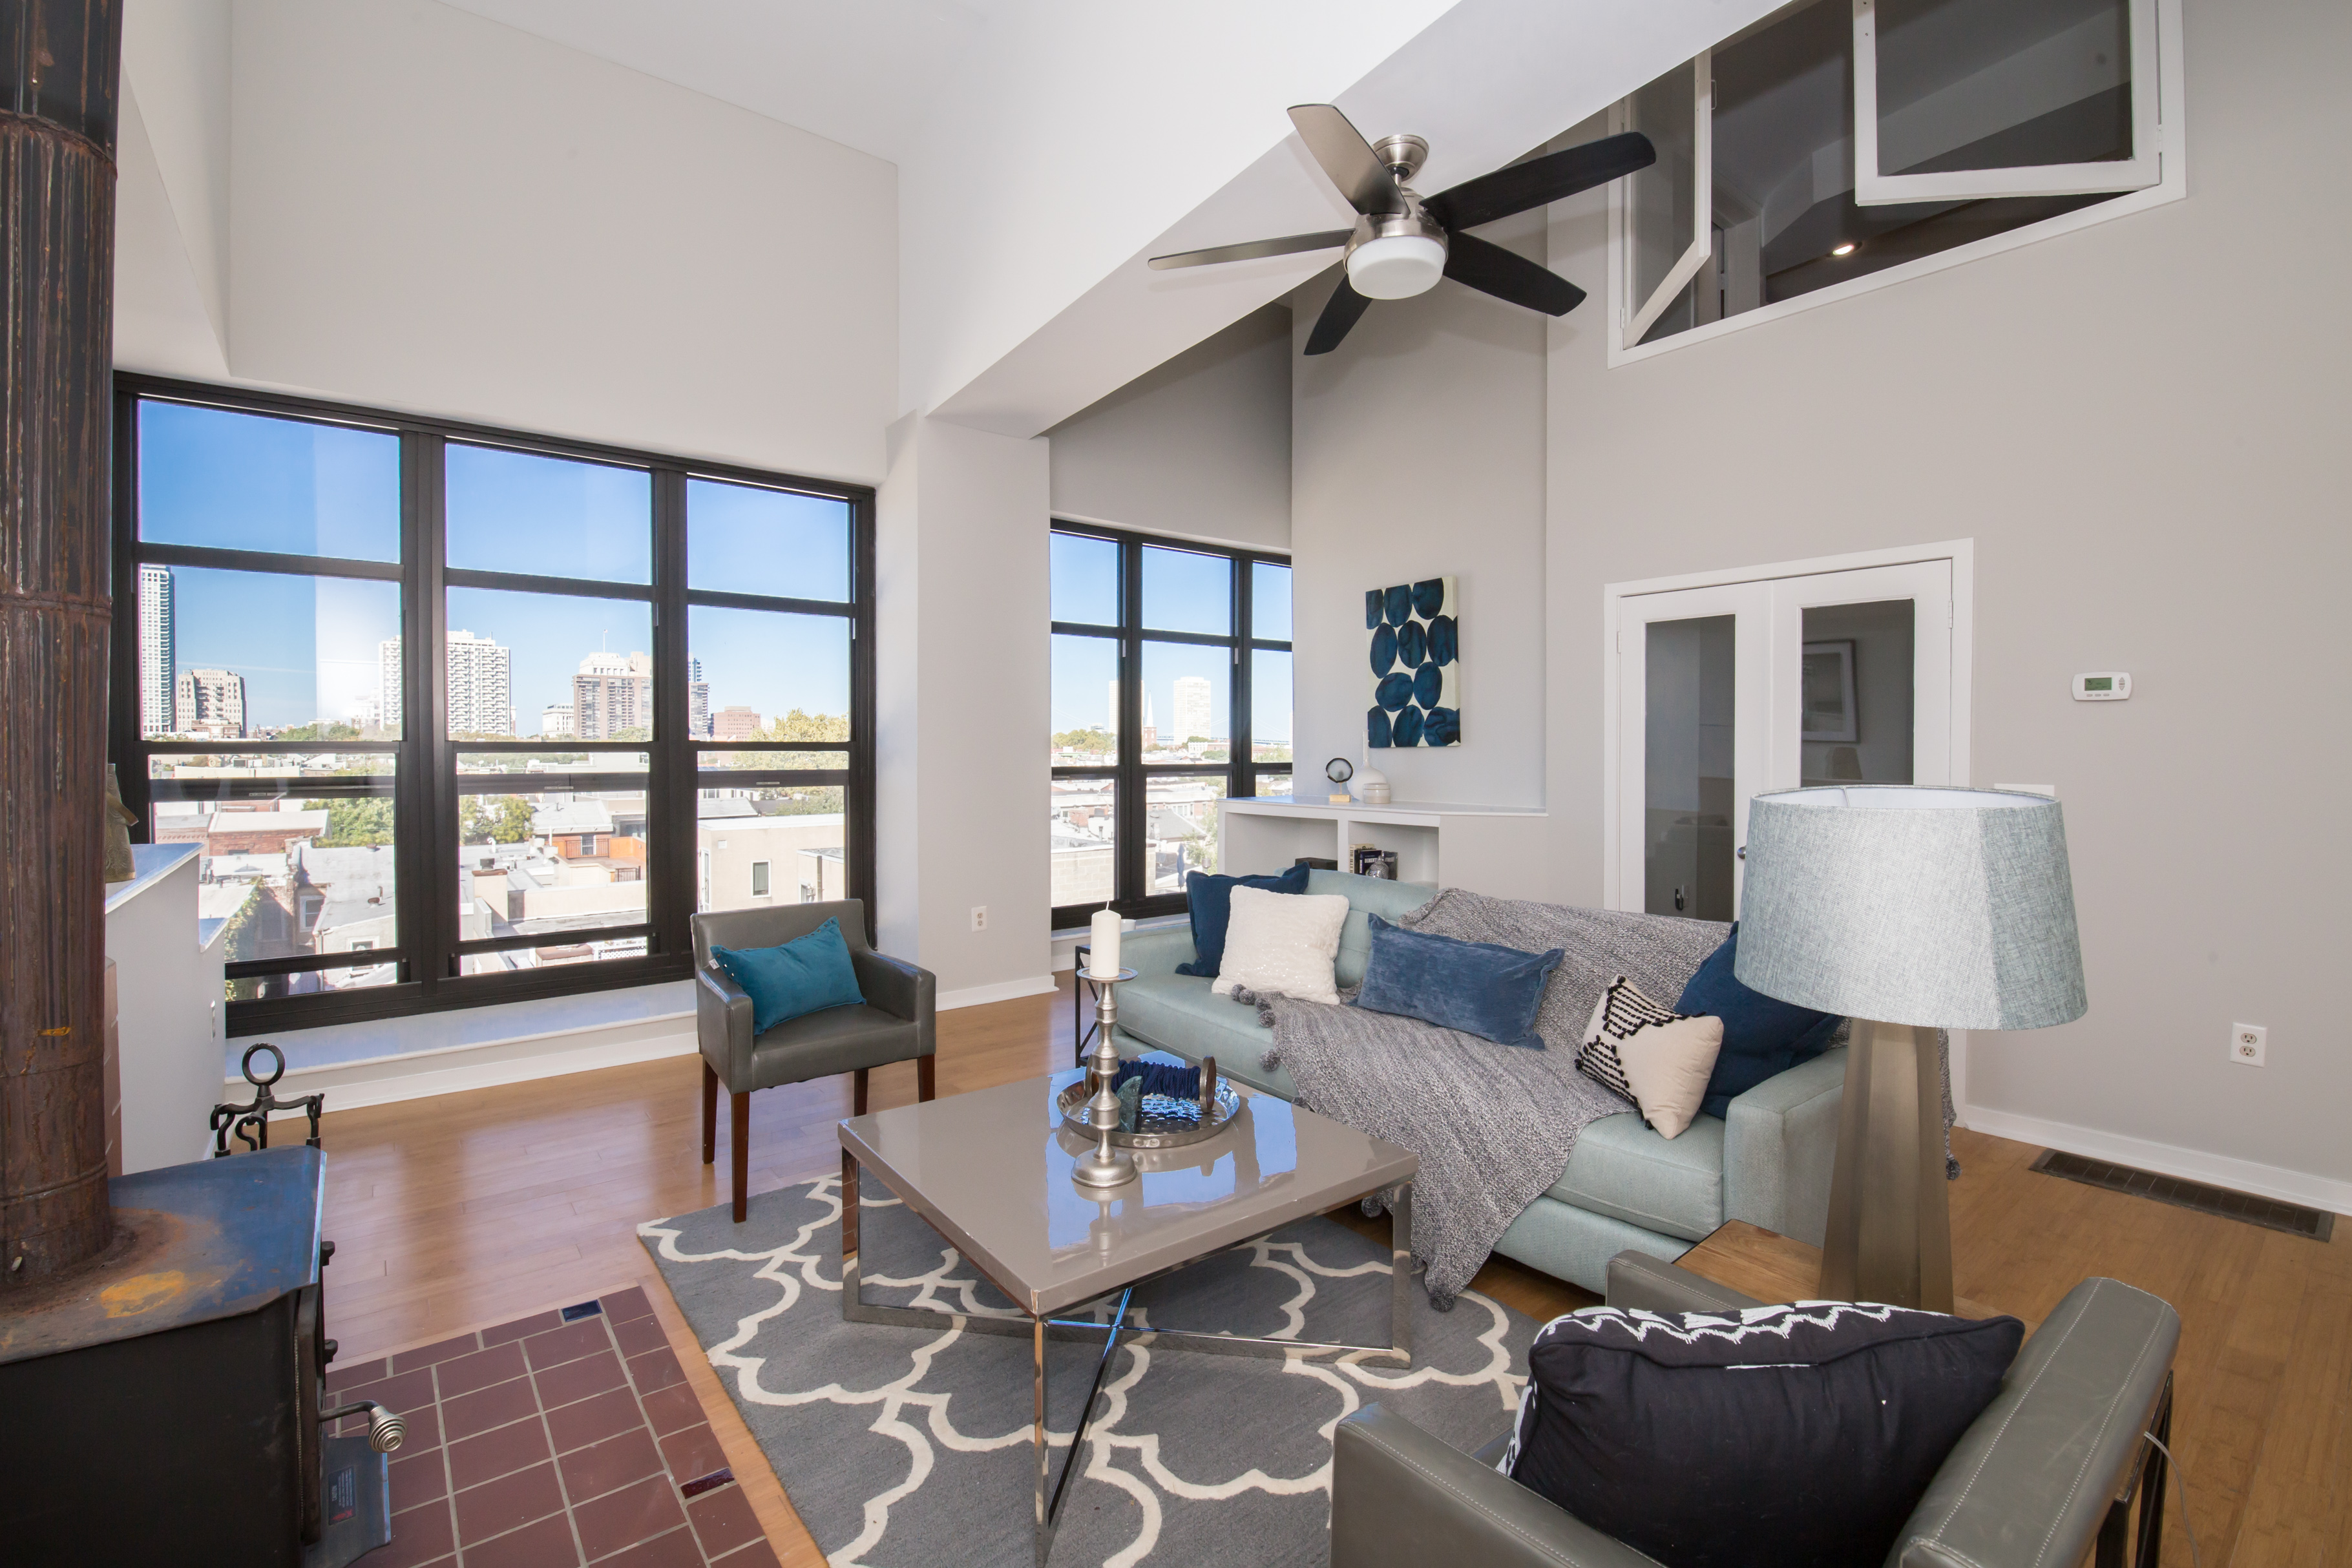 Top Floor Bella Vista Condo In Converted School Asks $349K